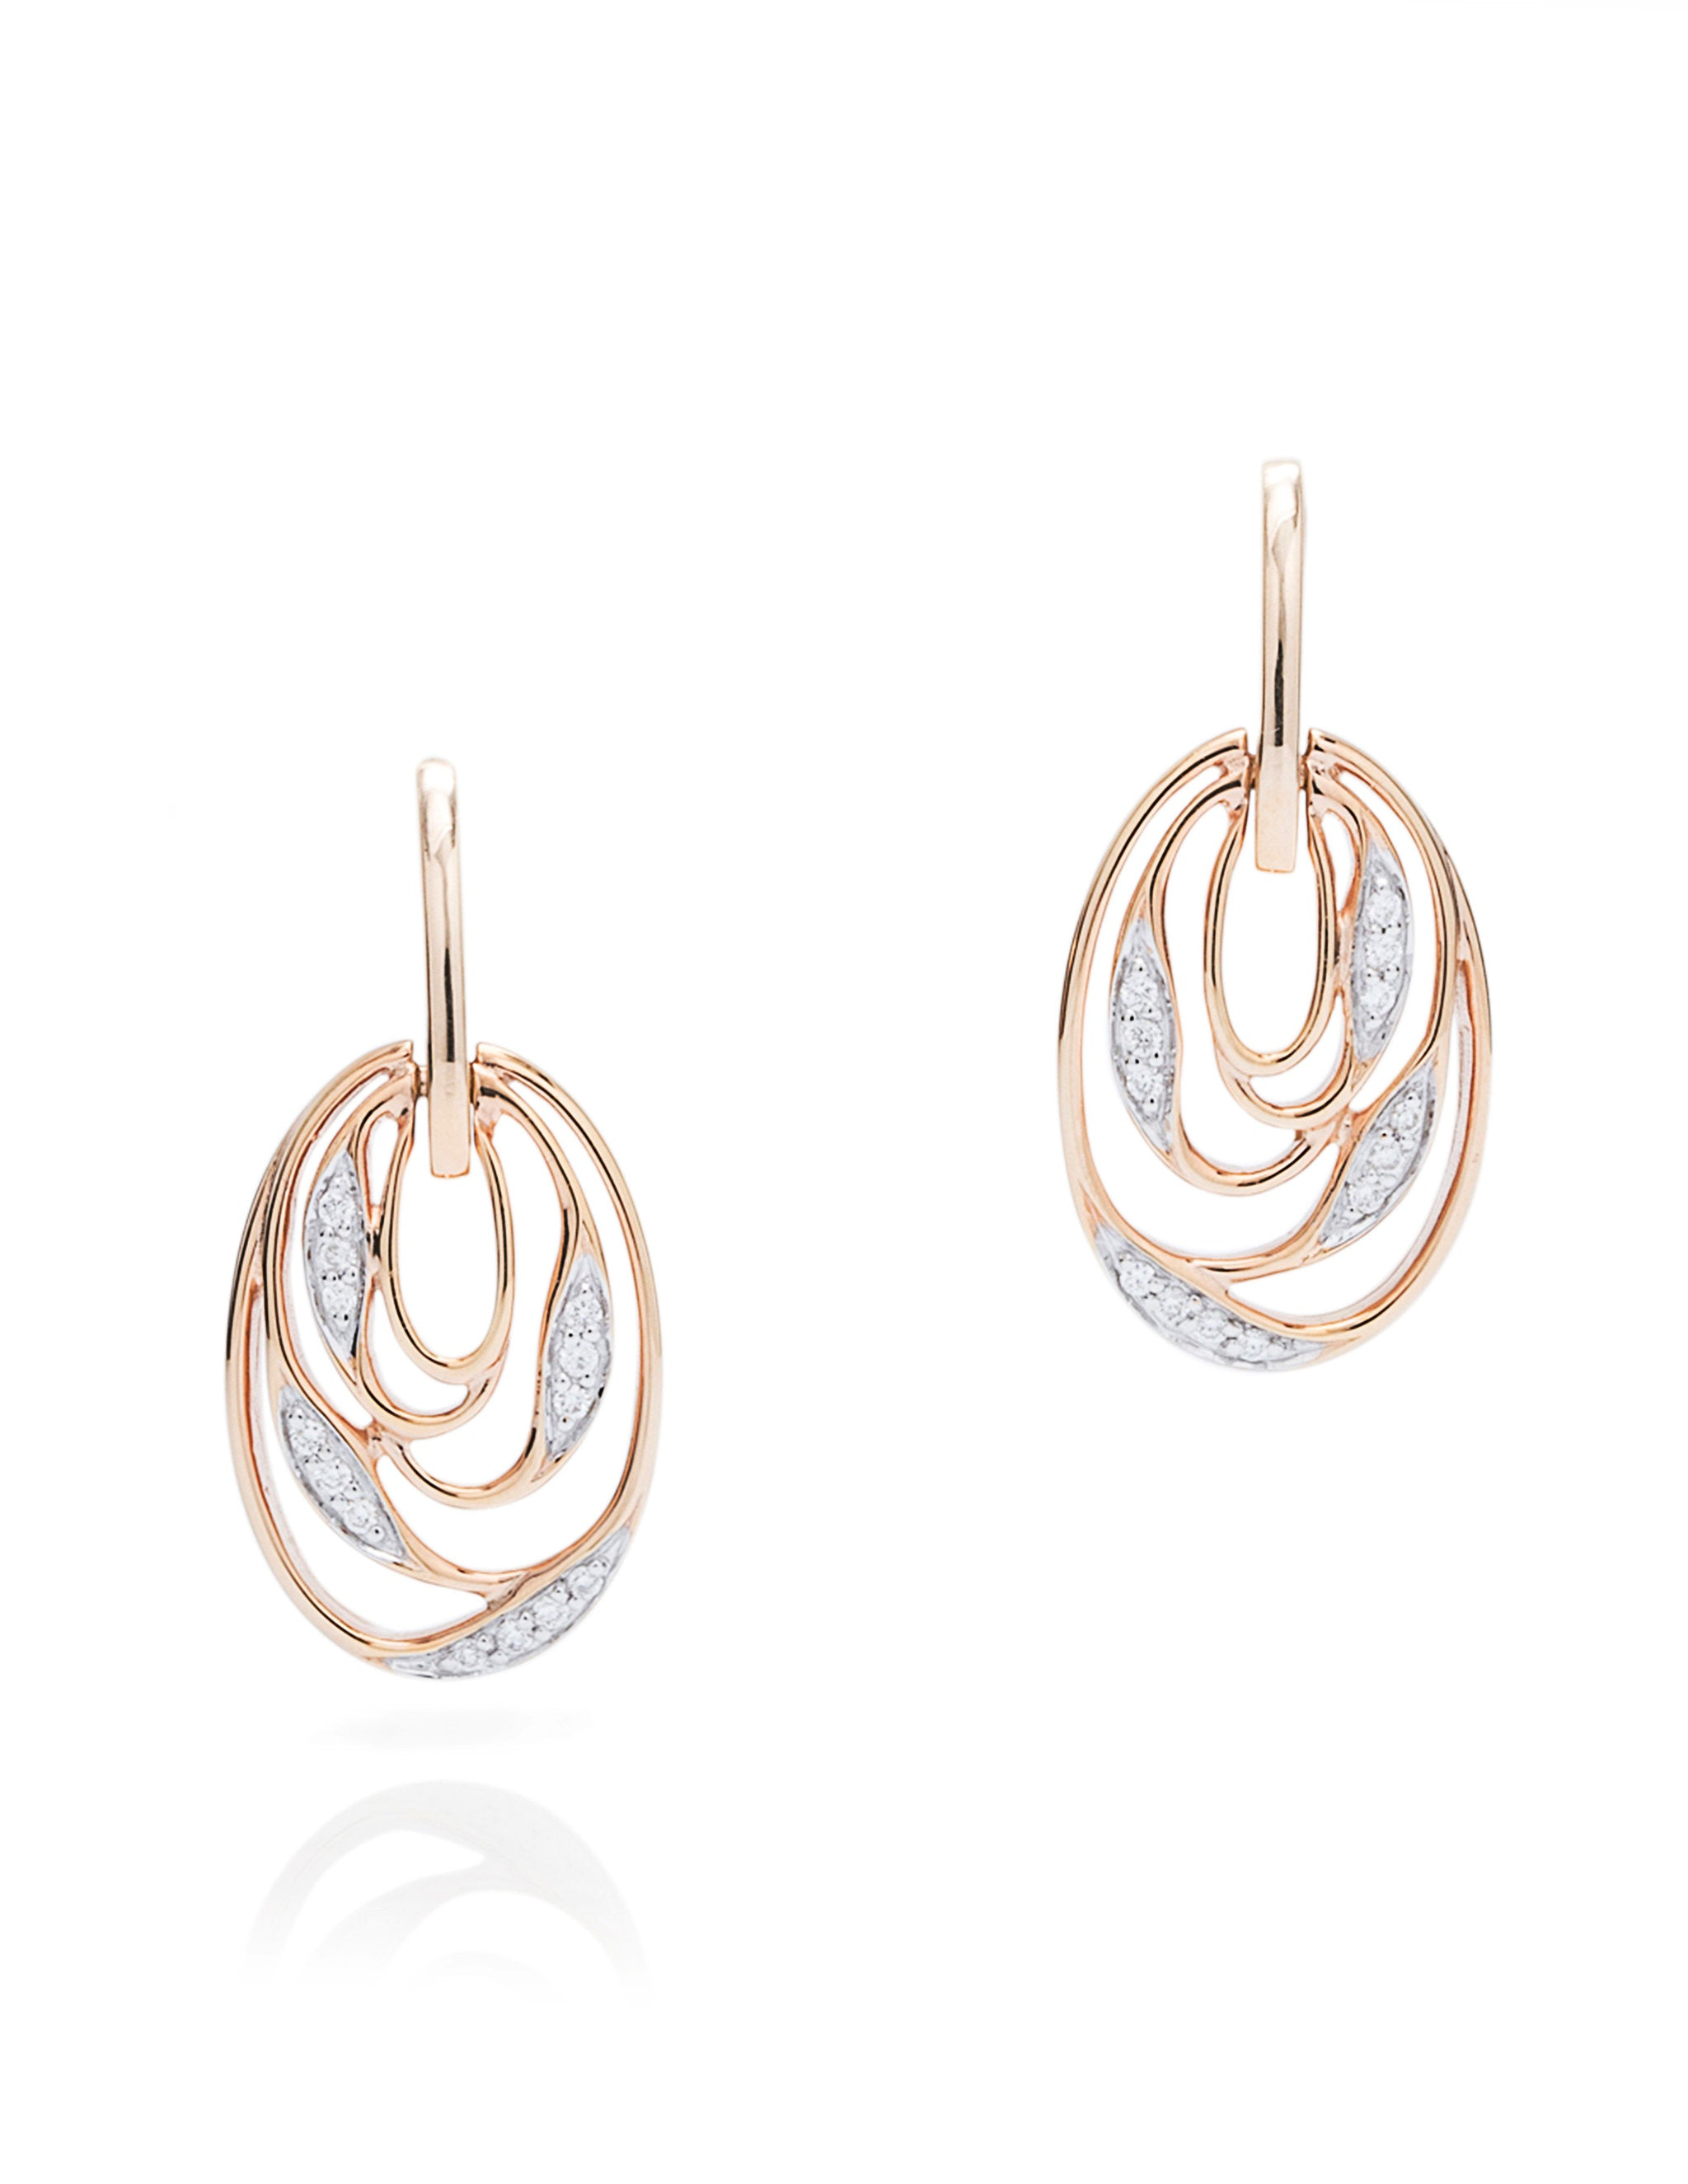 Wrapped Vine Rose Gold Earrings - Charles Koll Jewellers